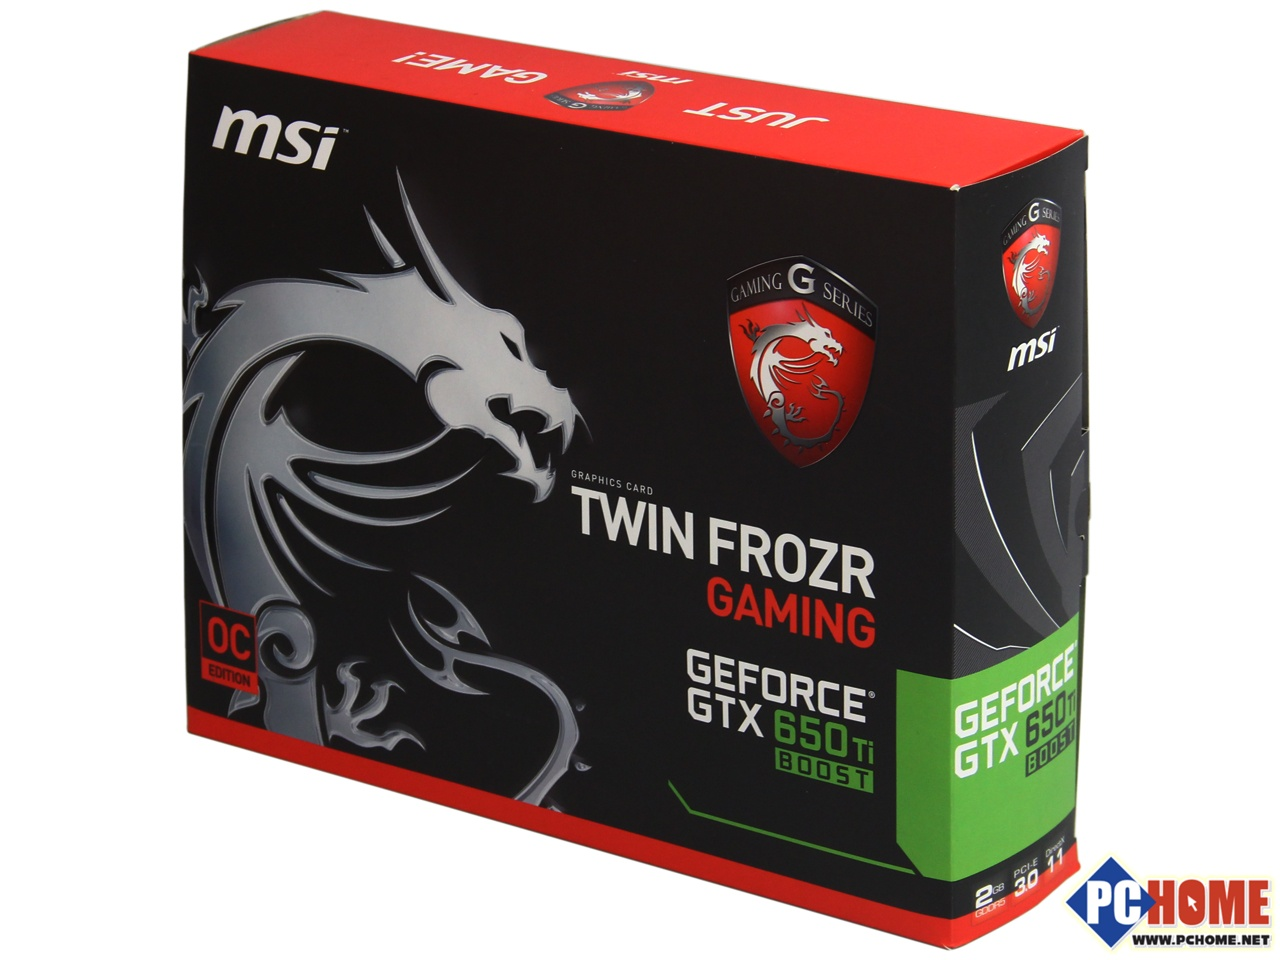 MSI GTX 650 Ti Boost TwinFrozr Gaming (1)